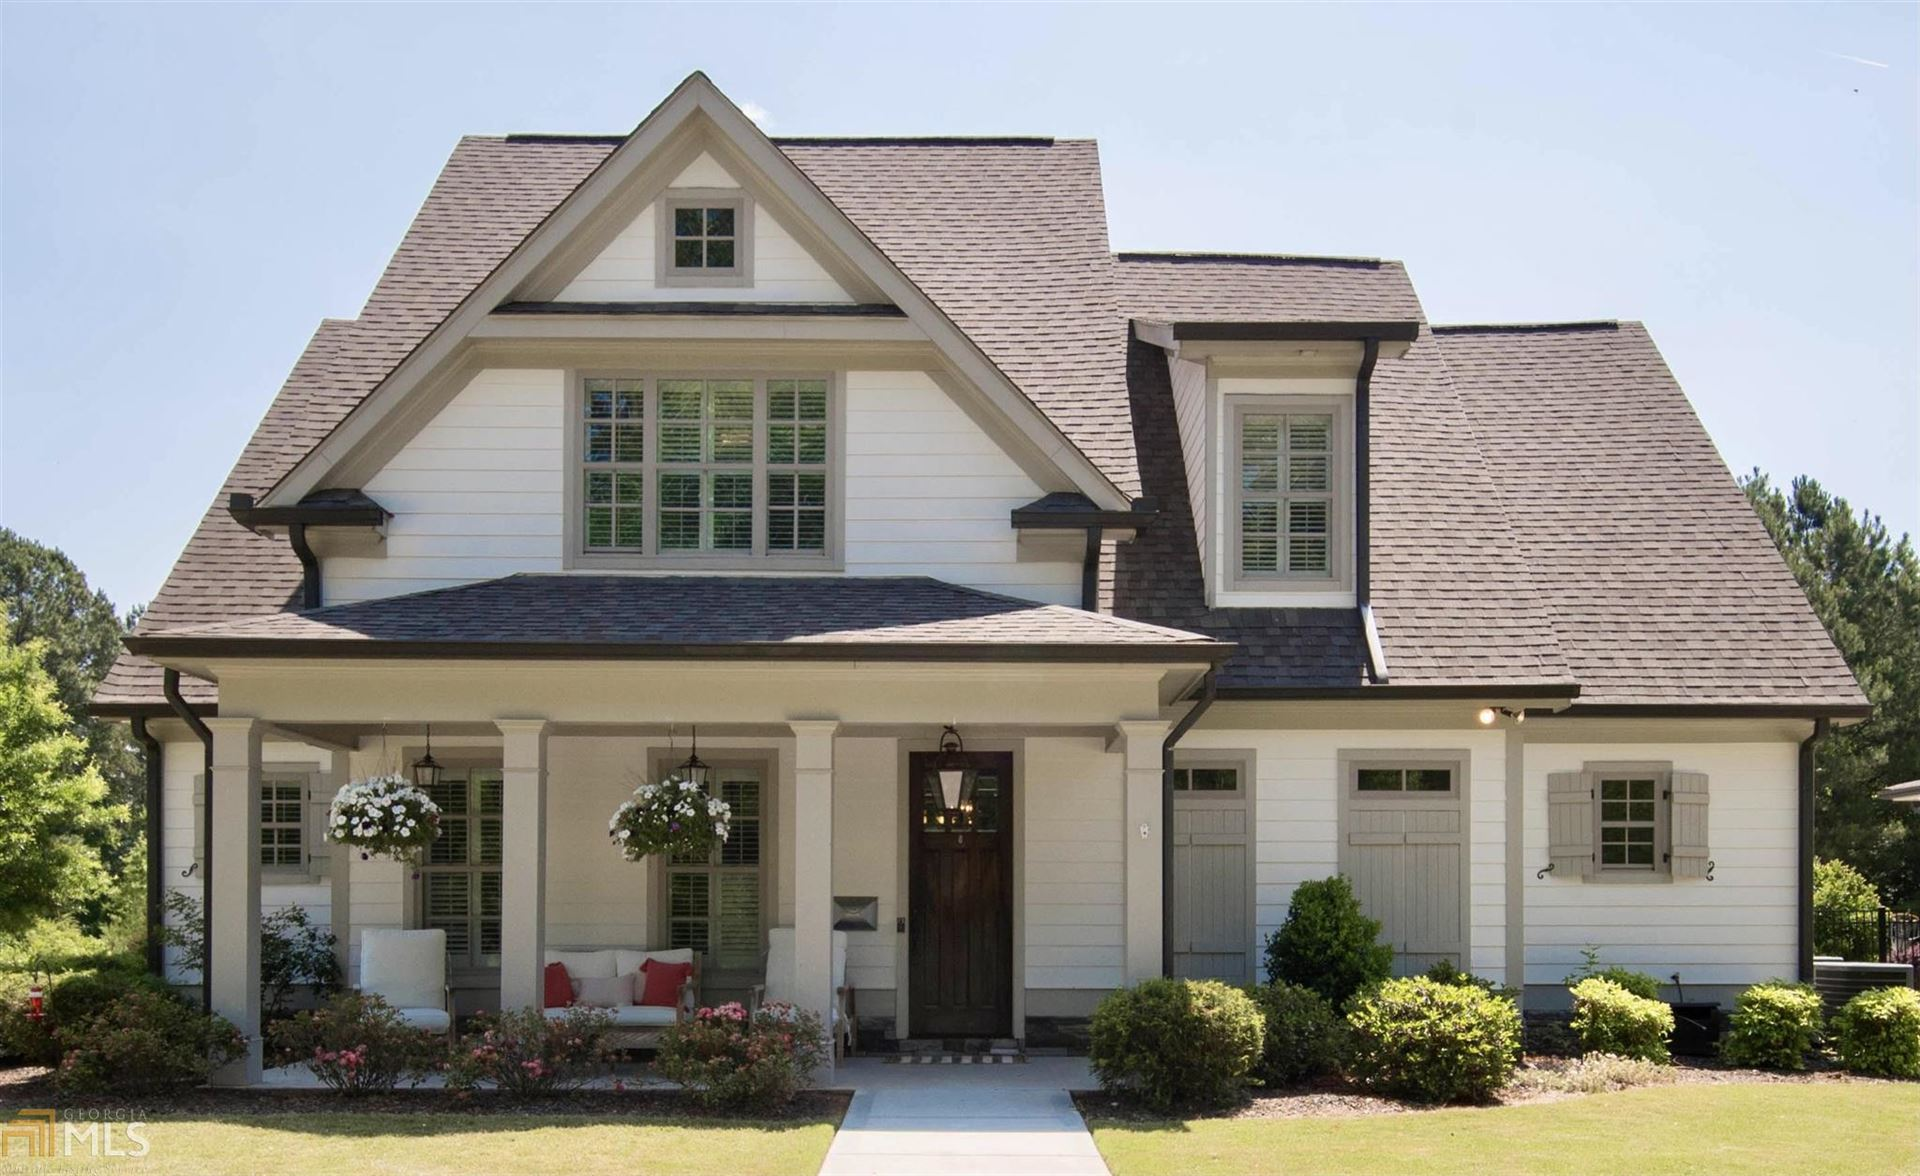 701 Approach Dr, Peachtree City, GA 30269 - #: 8985526